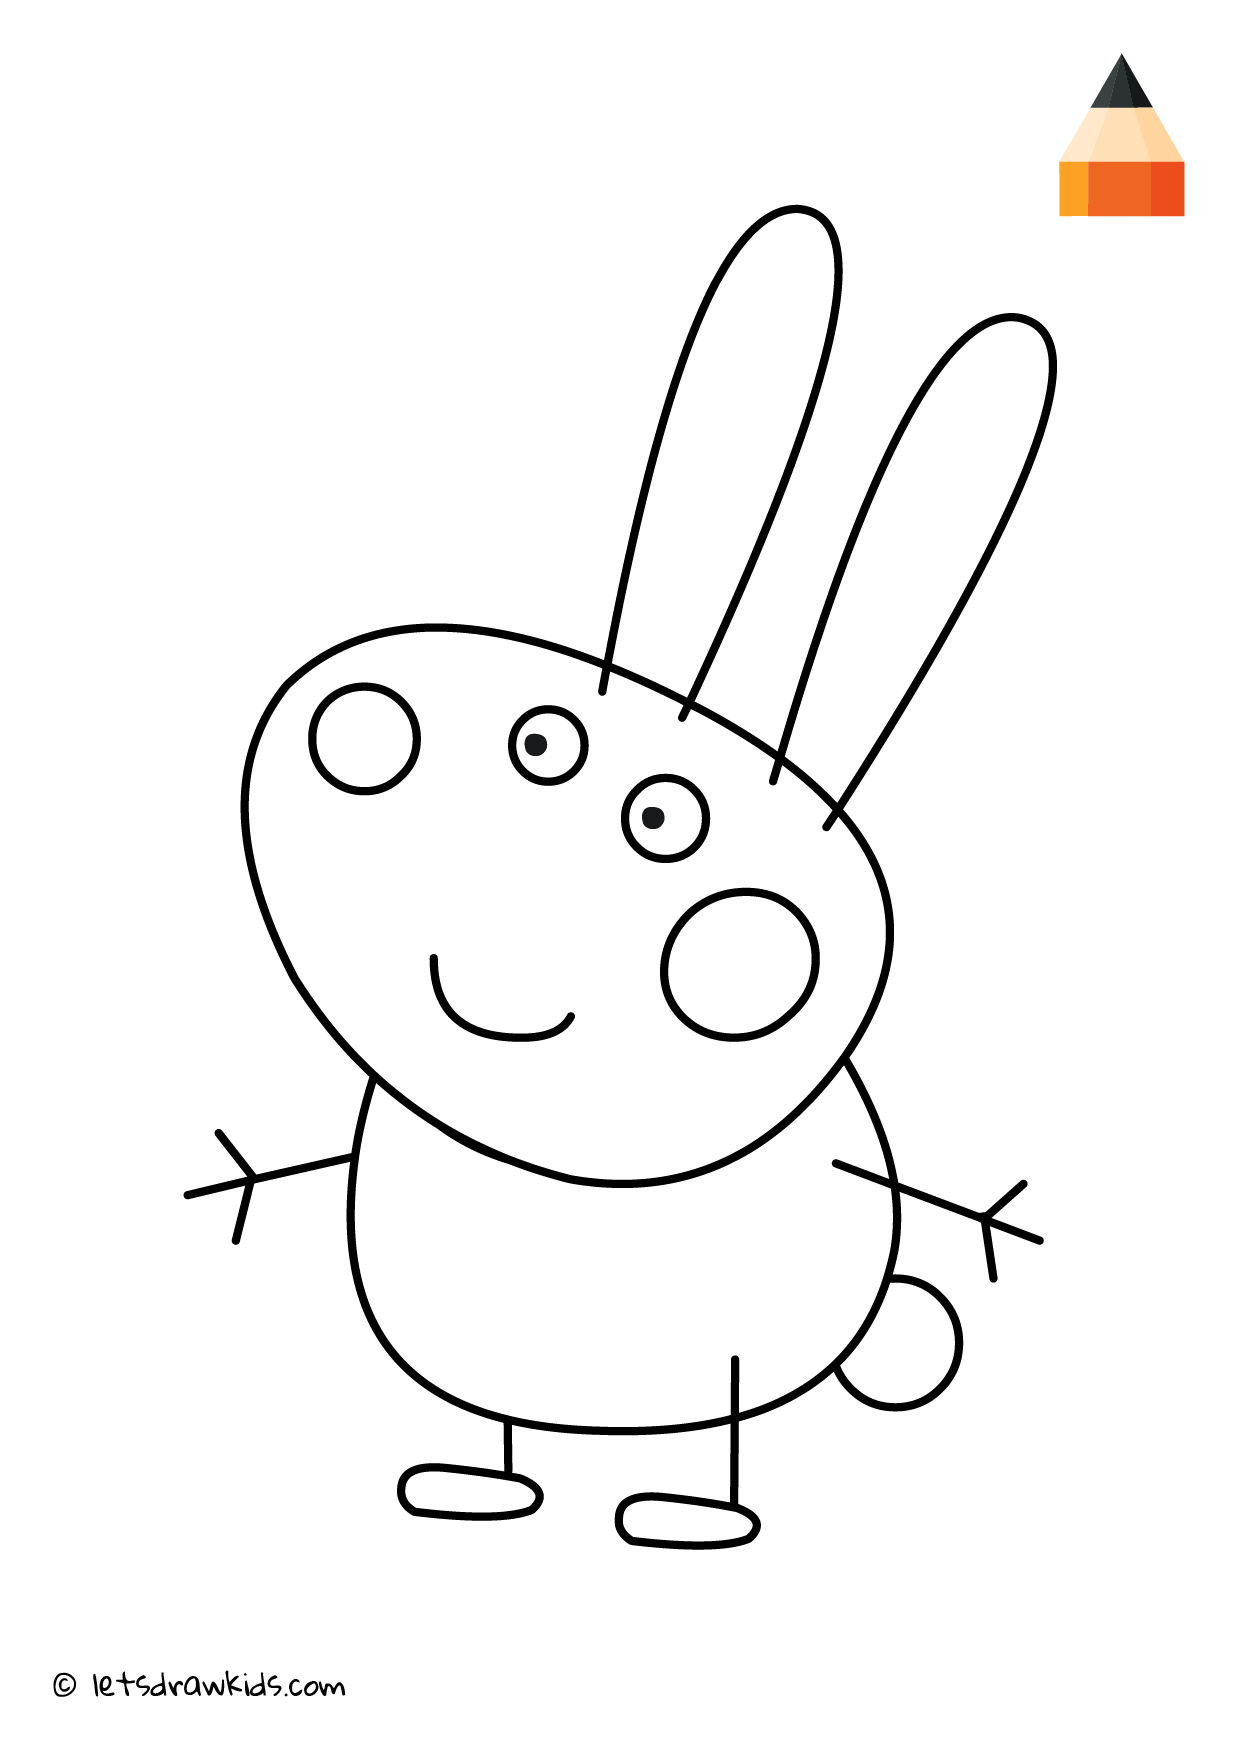 Coloring Page Peppa Pig Richard Rabbit Peppa Pig Coloring Pages Barbie Drawing Art Drawings For Kids